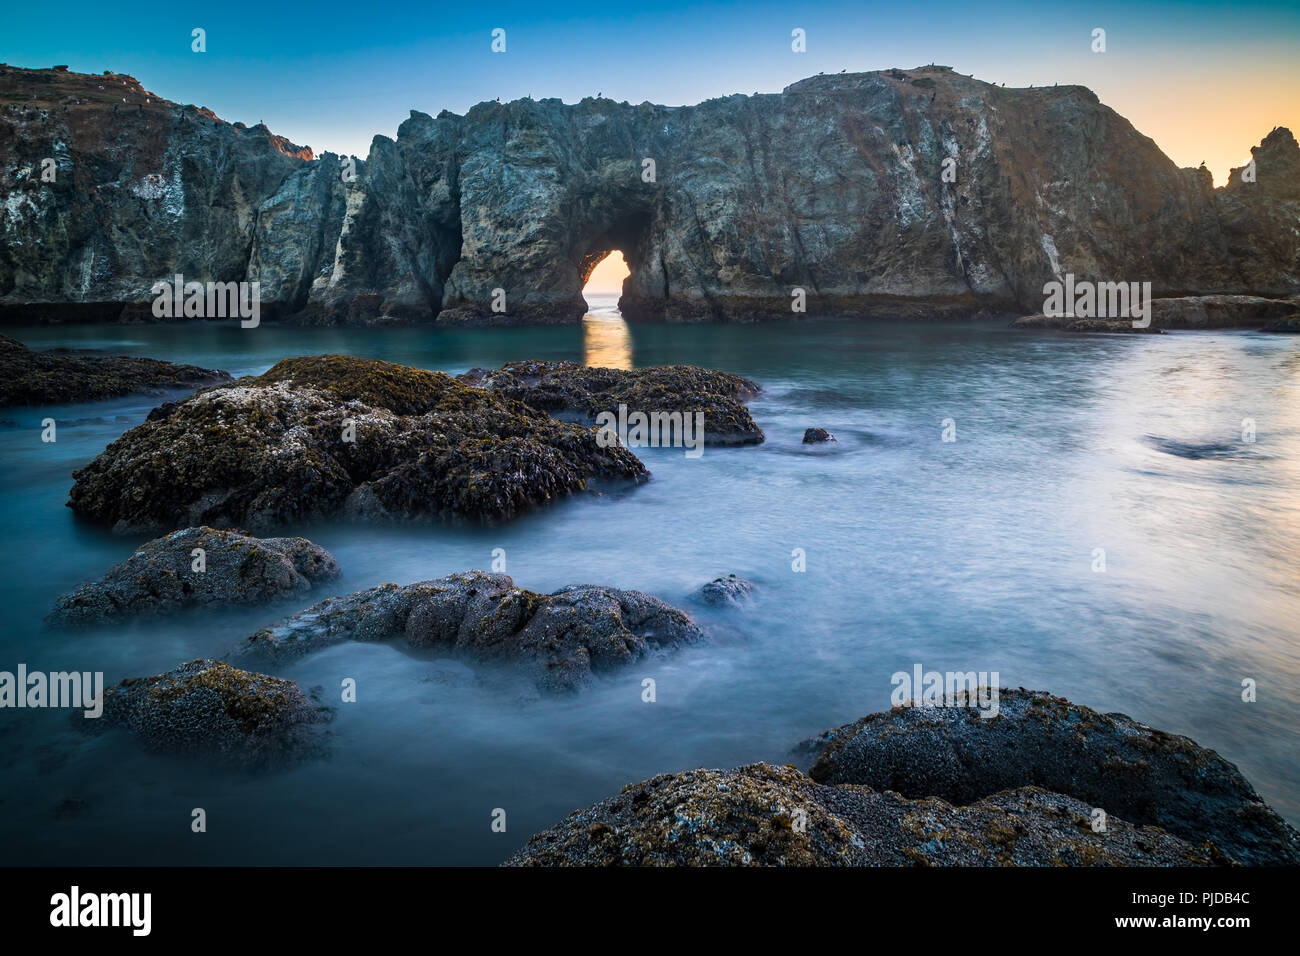 Arches, seastacks, and rocks at Bandon Beach, Oregon - Stock Image